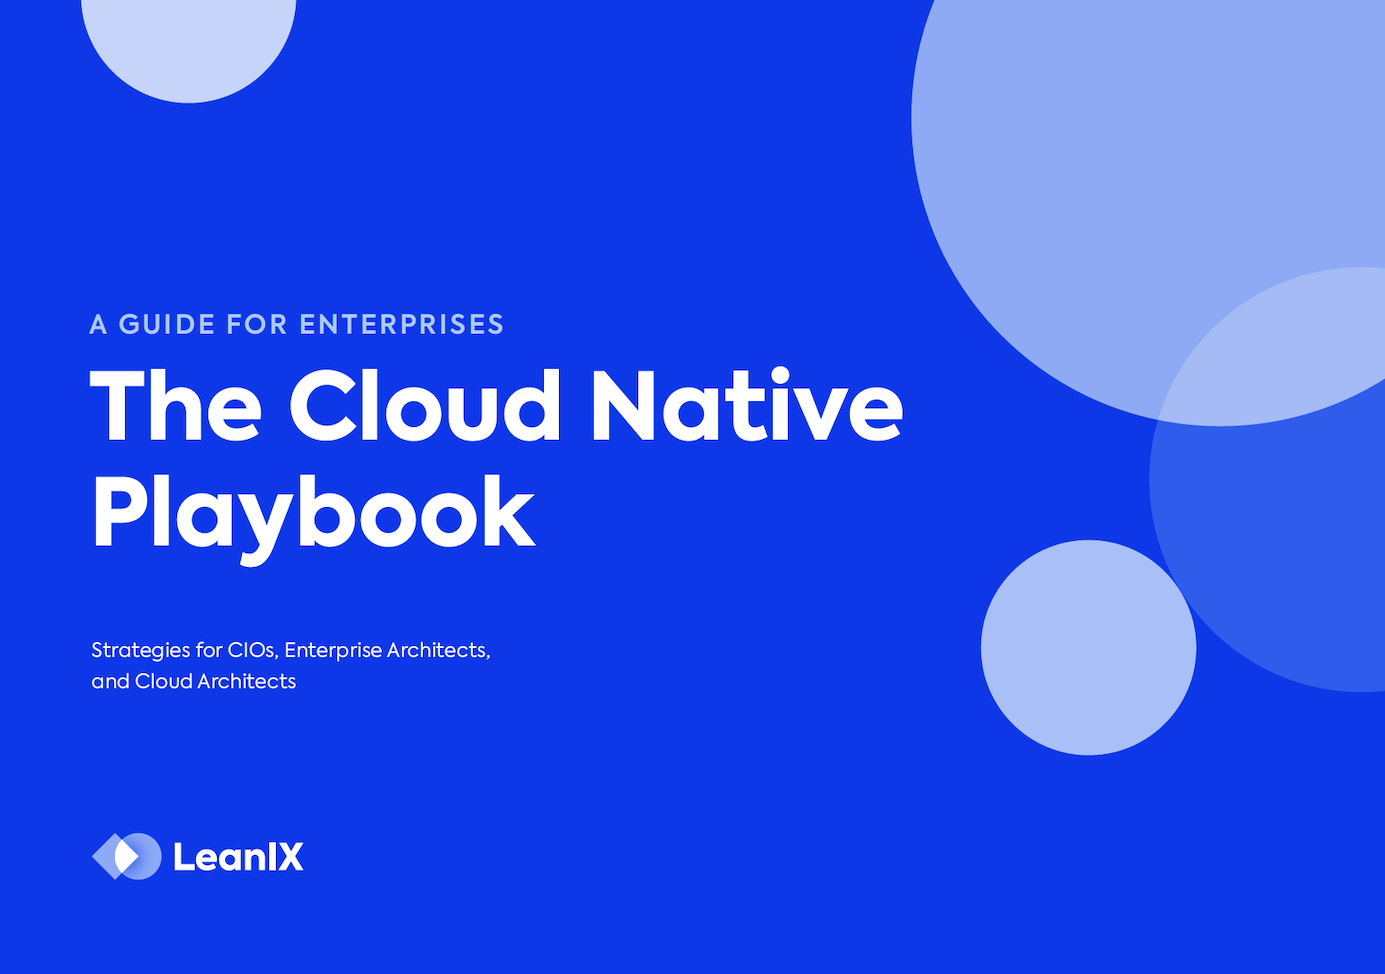 The Cloud Native Playbook: A Guide for Enterprises